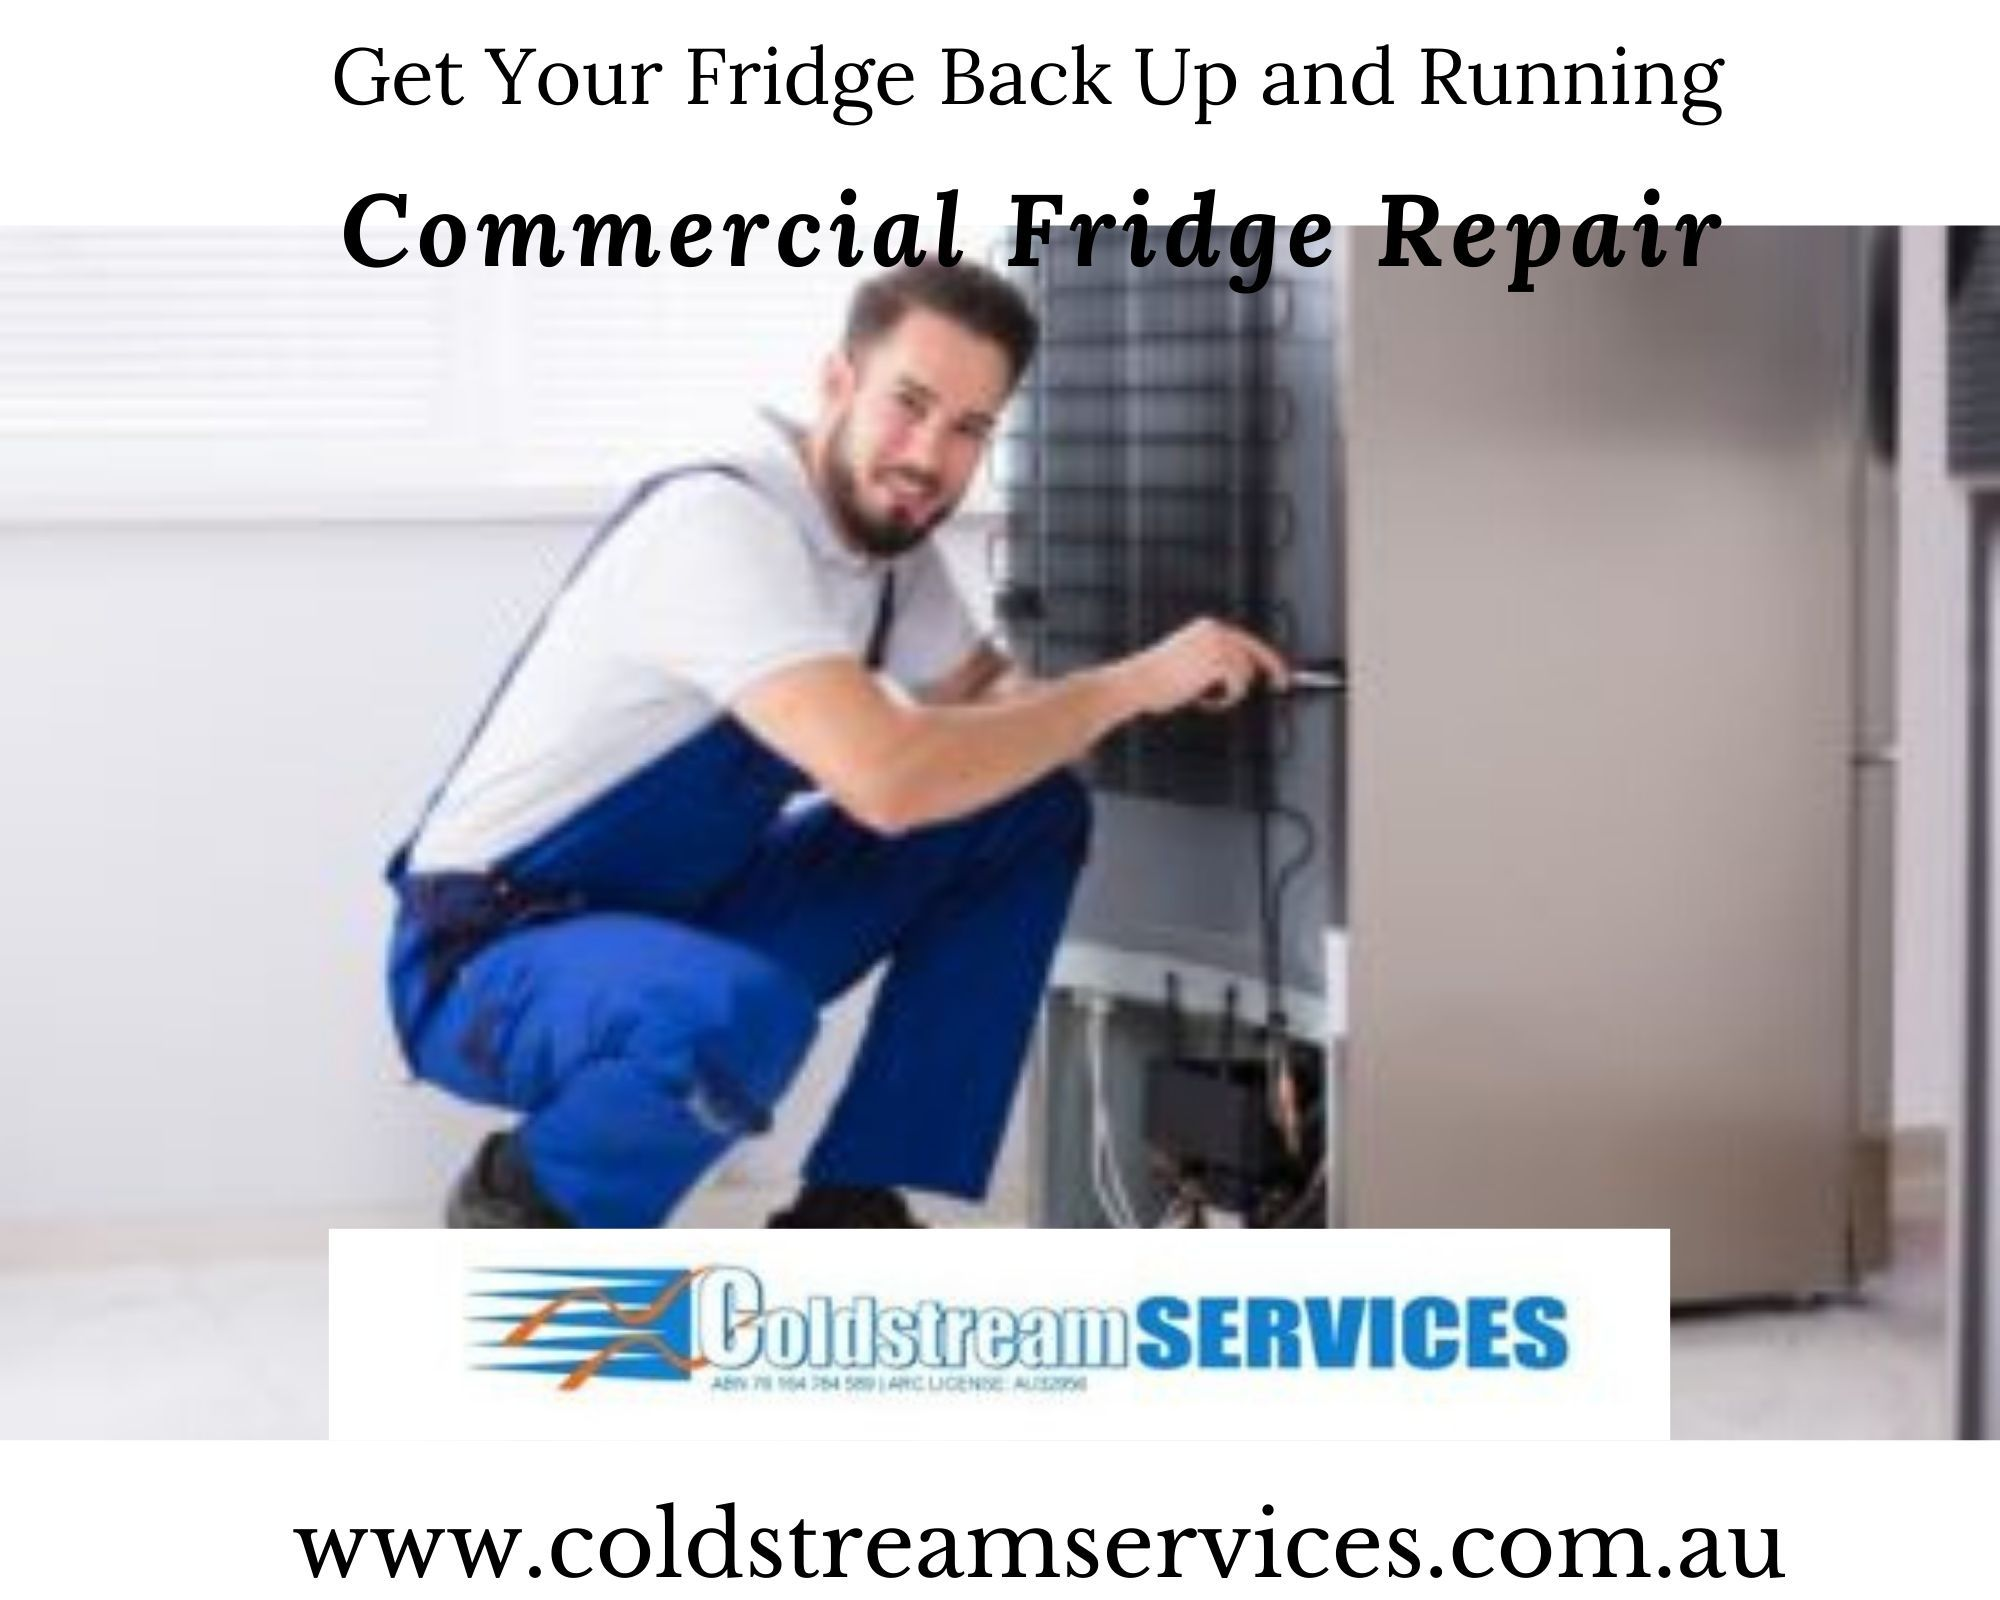 Has your fridge suddenly stopped working? Have an event